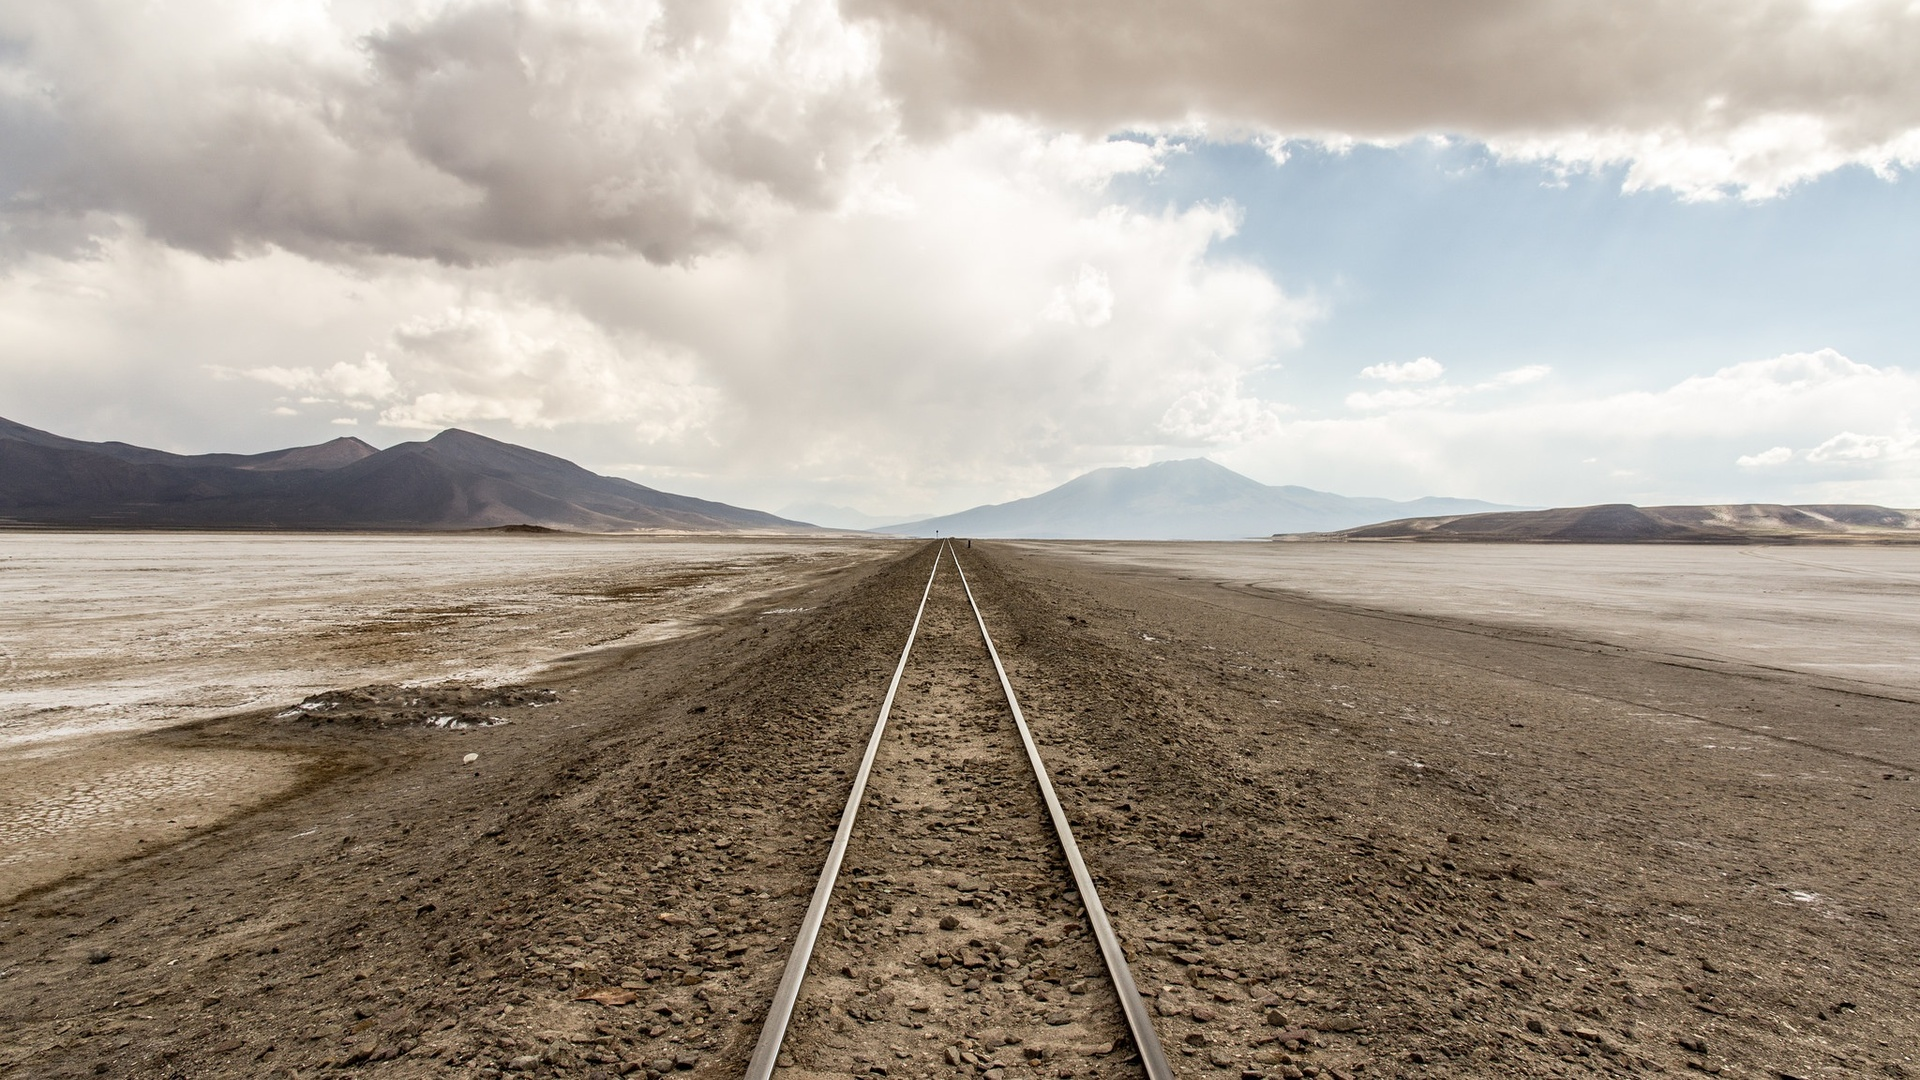 1920x1080 railway line desert nature landscape laptop full hd 1080p